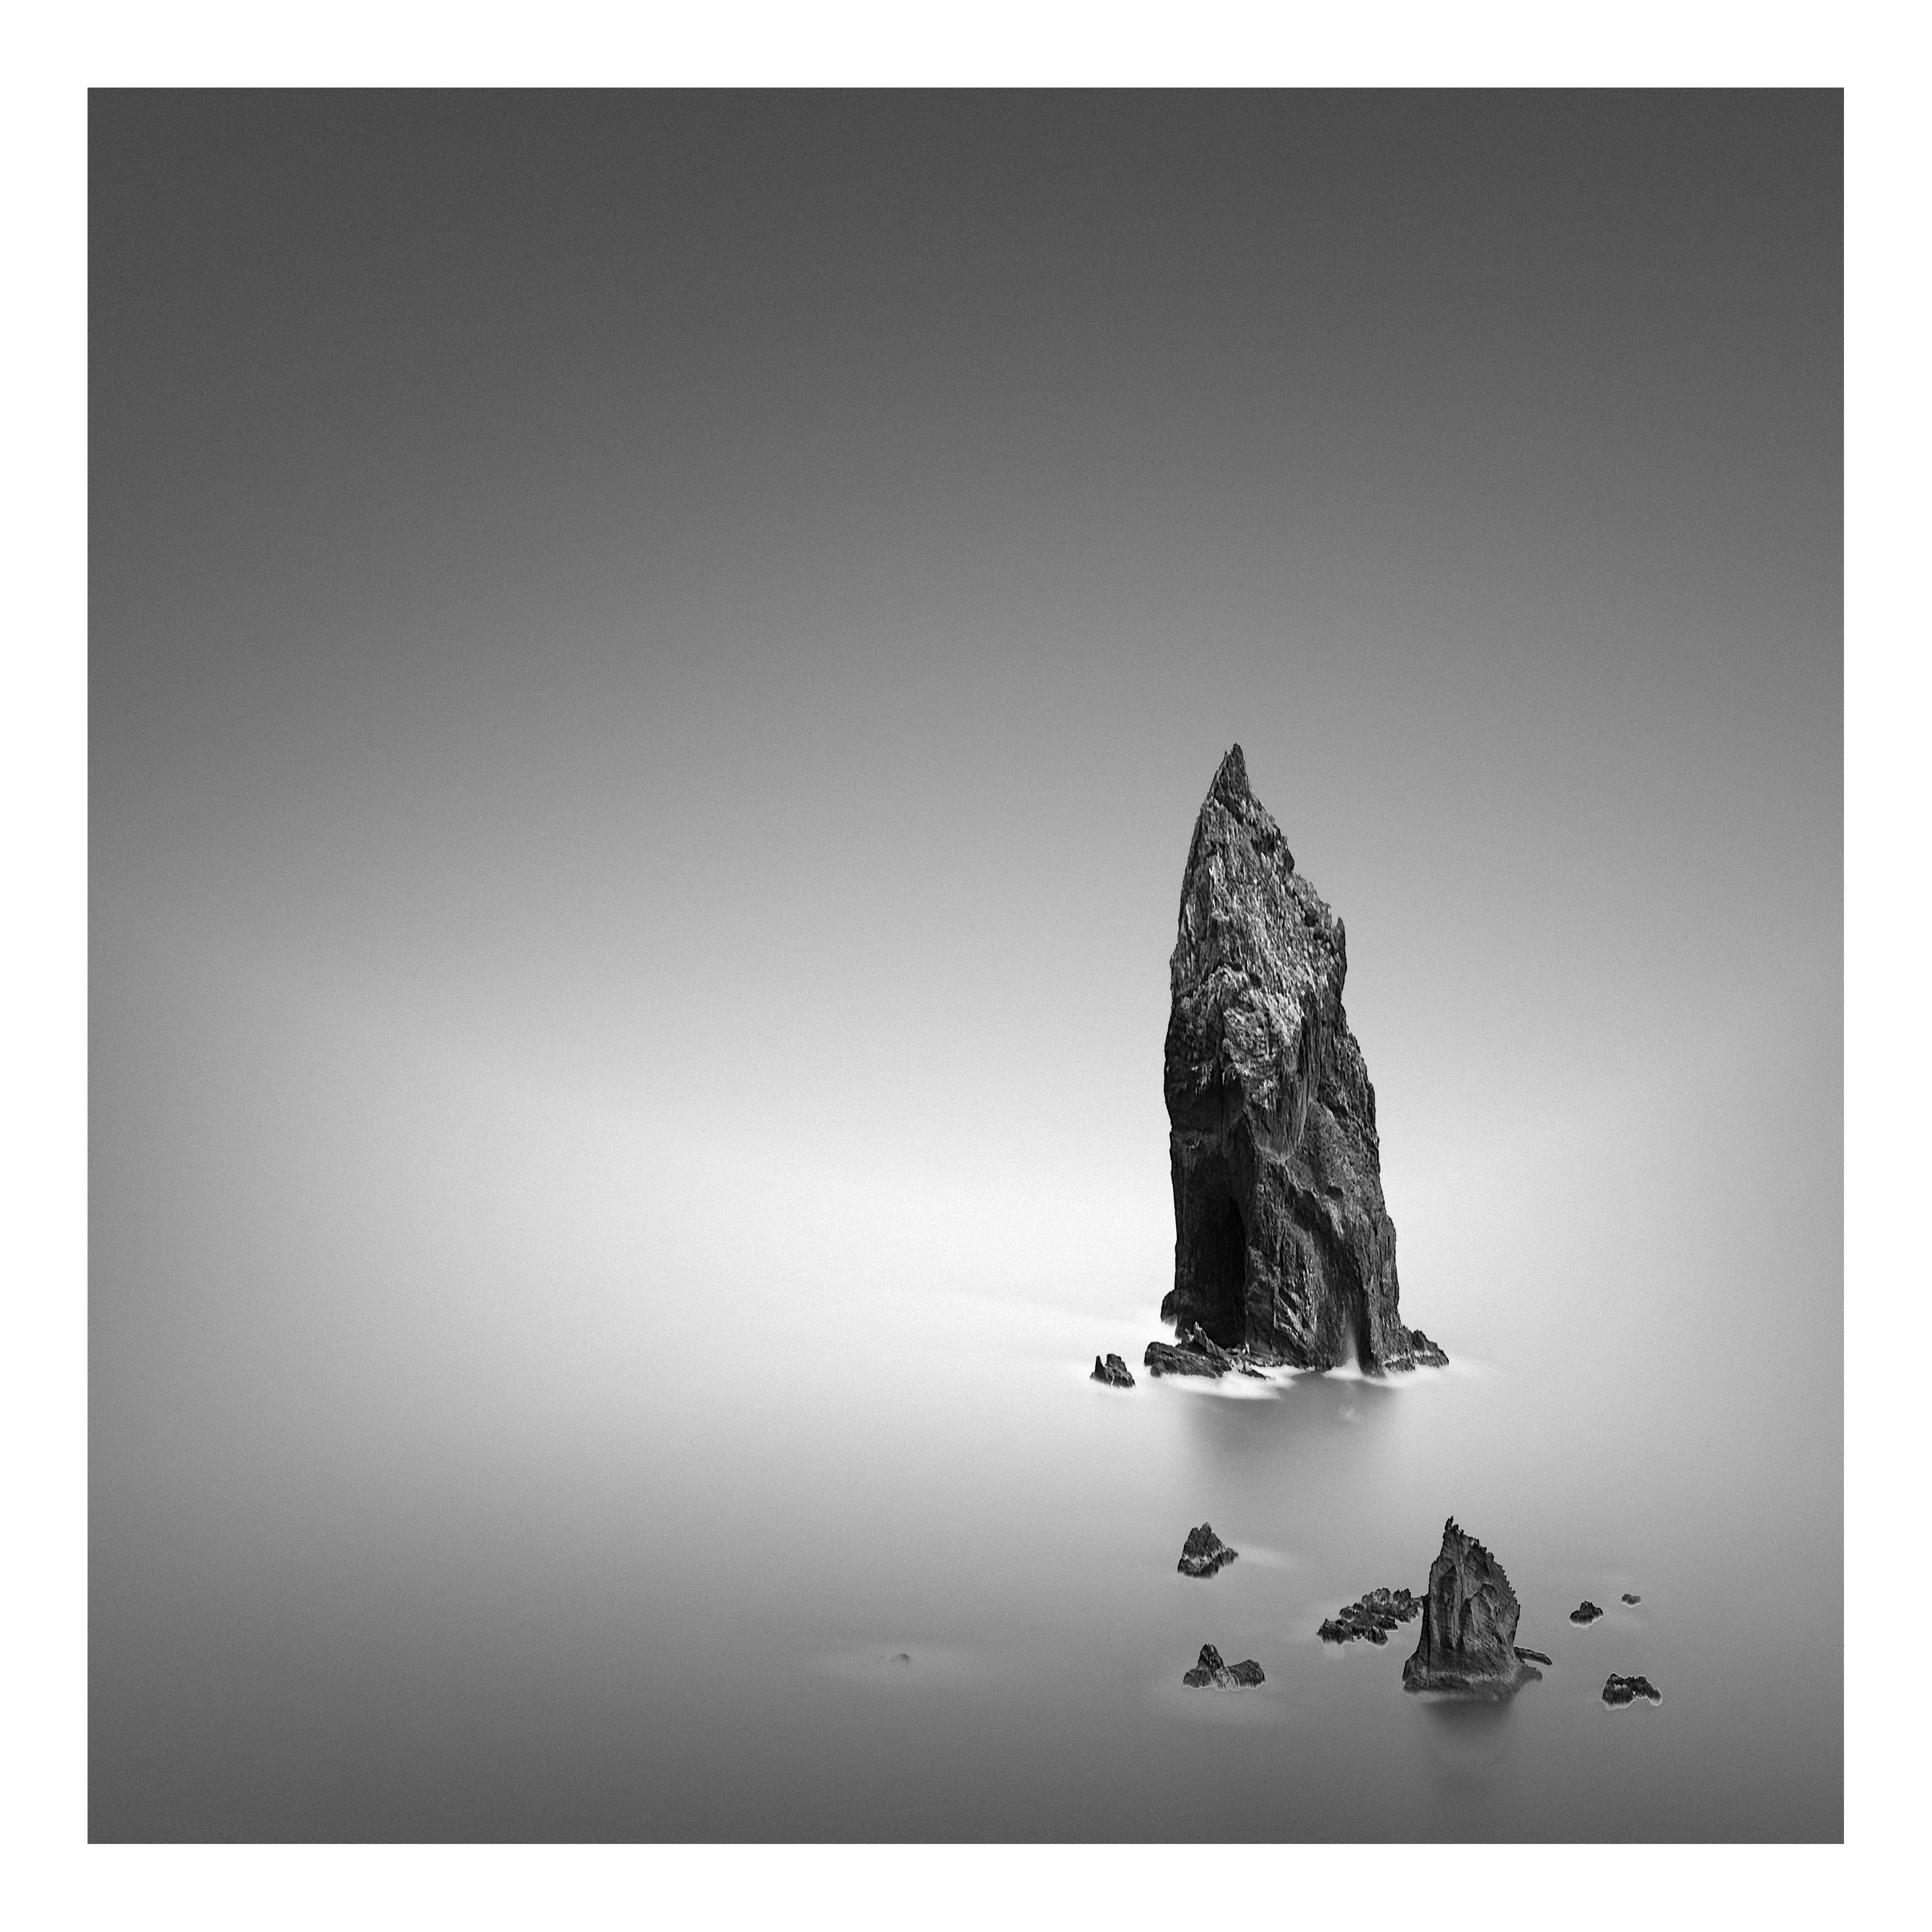 _ALI3216 risen sharp rock out of water in madeira-Edit.jpg